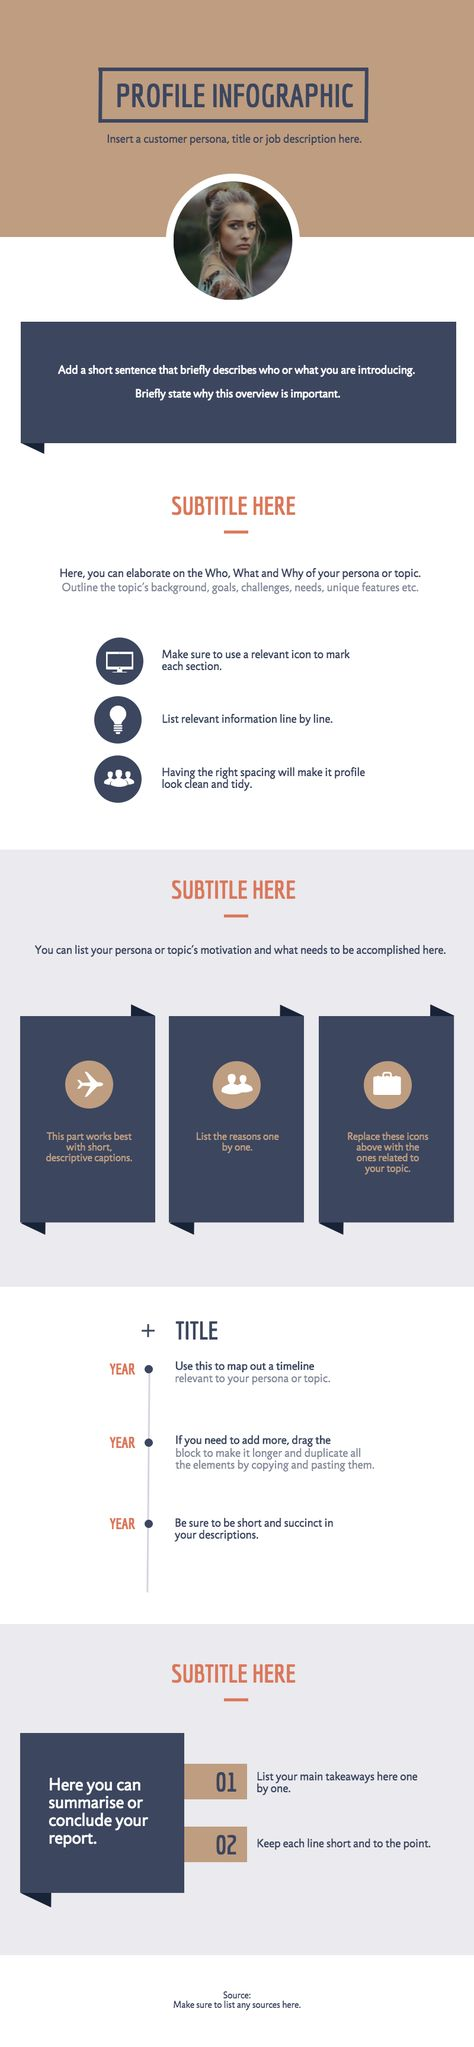 Milestones Are Worth Celebrating And This New Infographic Template